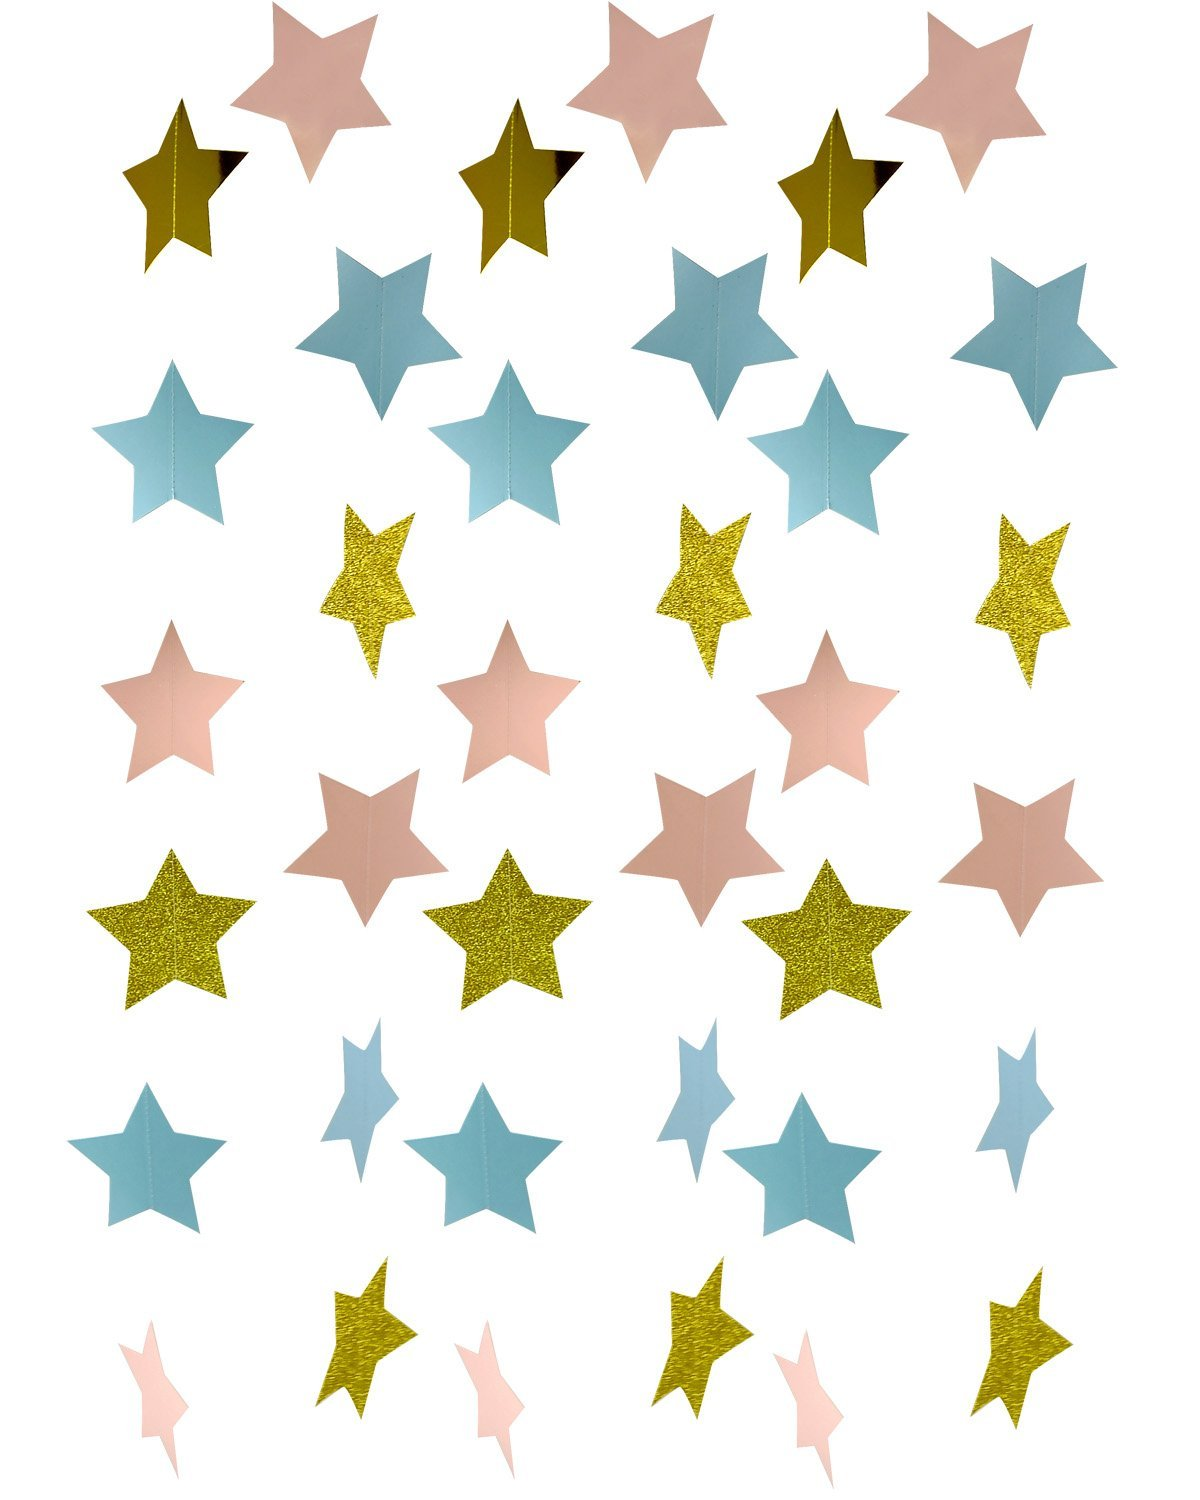 Furuix Gender Reveal Party Decorations 2pcs Twinkle, Twinkle Pink Blue Gold Paper Star Garland Star String for Baby Shower Decorations Birthday Decor/Boy or Girl Gender Reveal Party Supplies